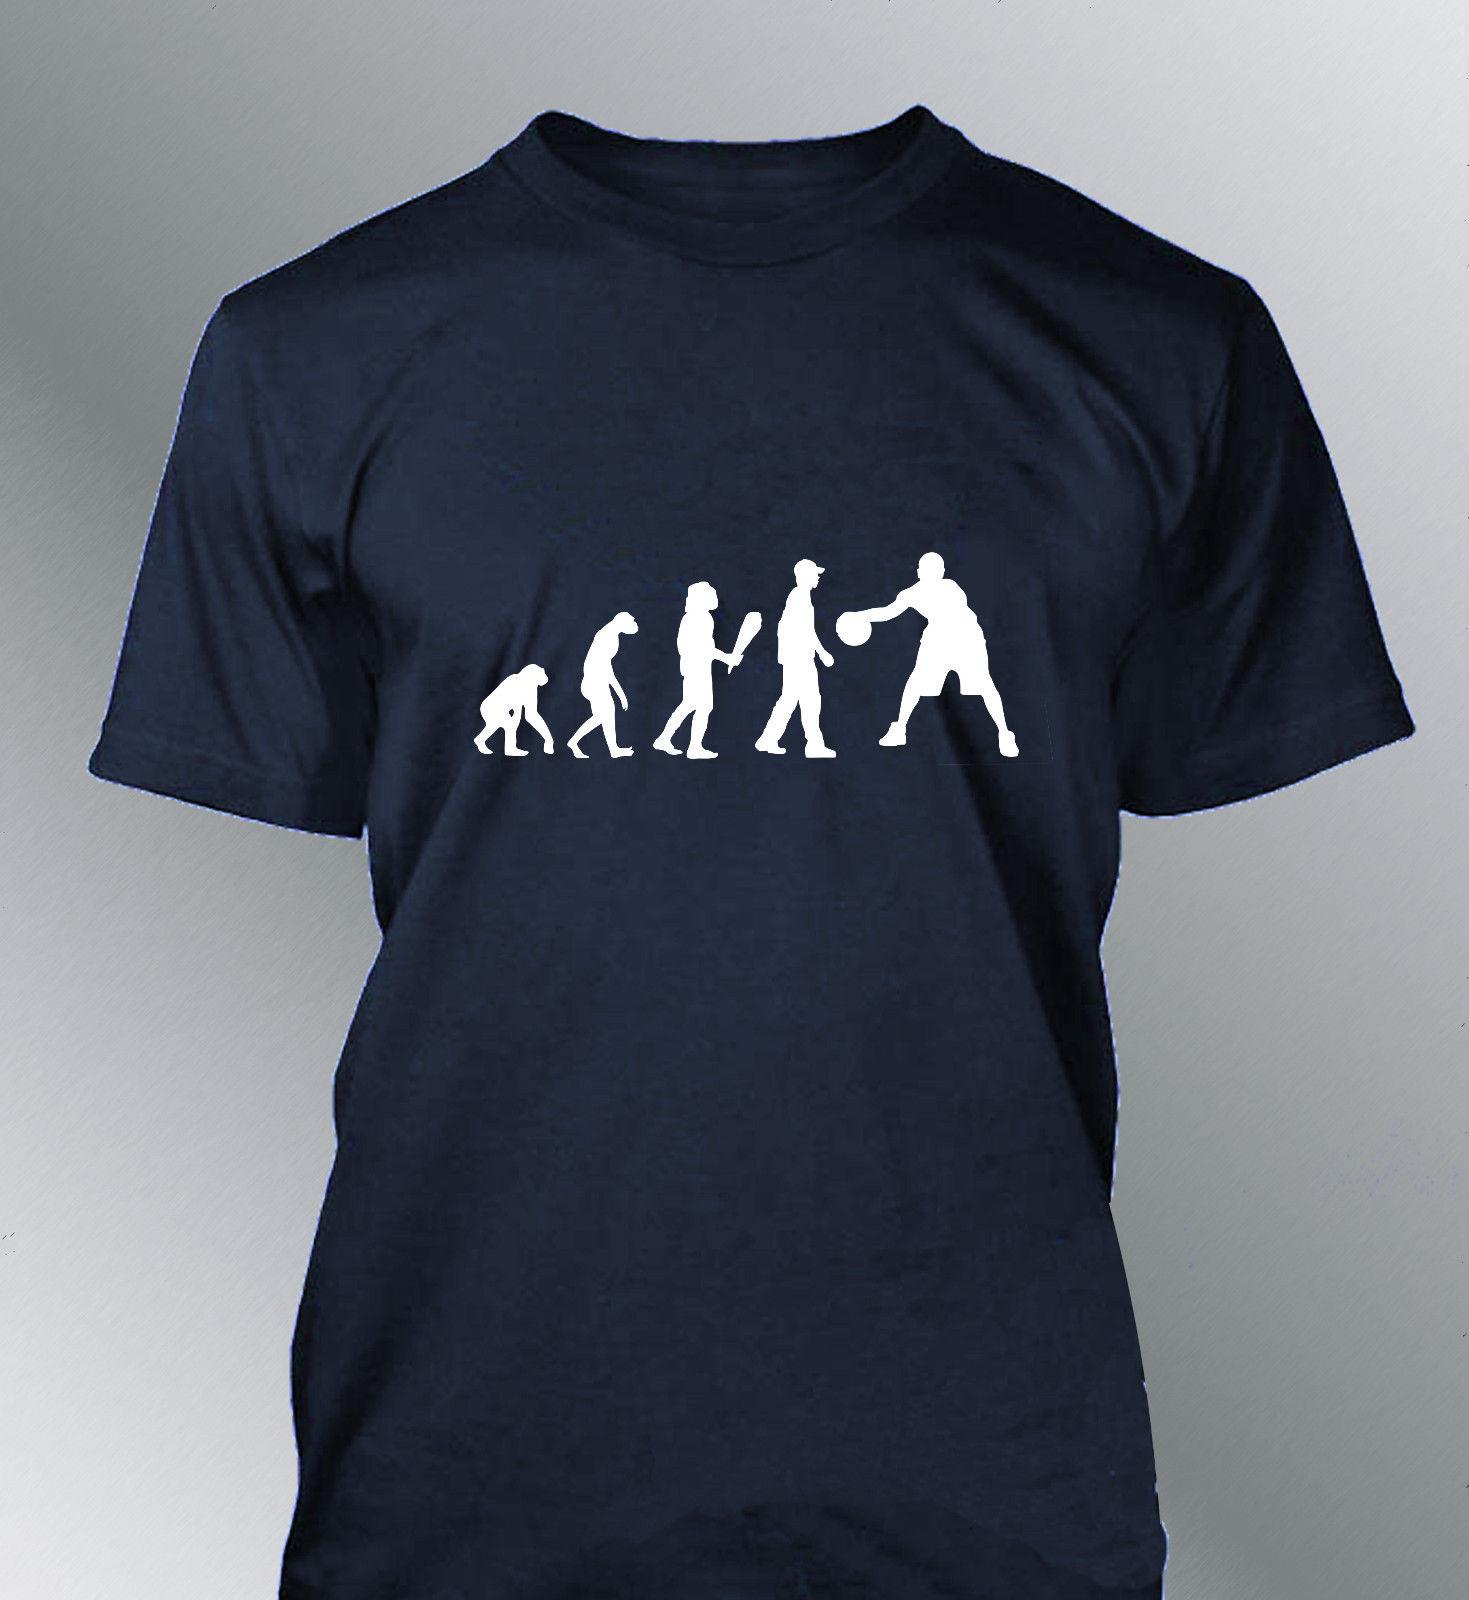 571851f5791c Tee Shirt Personnalise Homme Evolution BASKET L XL Humour Human Sport  Basketball Funny Unisex Casual Tshirt Top Super Cool T Shirts And T Shirts  From ...